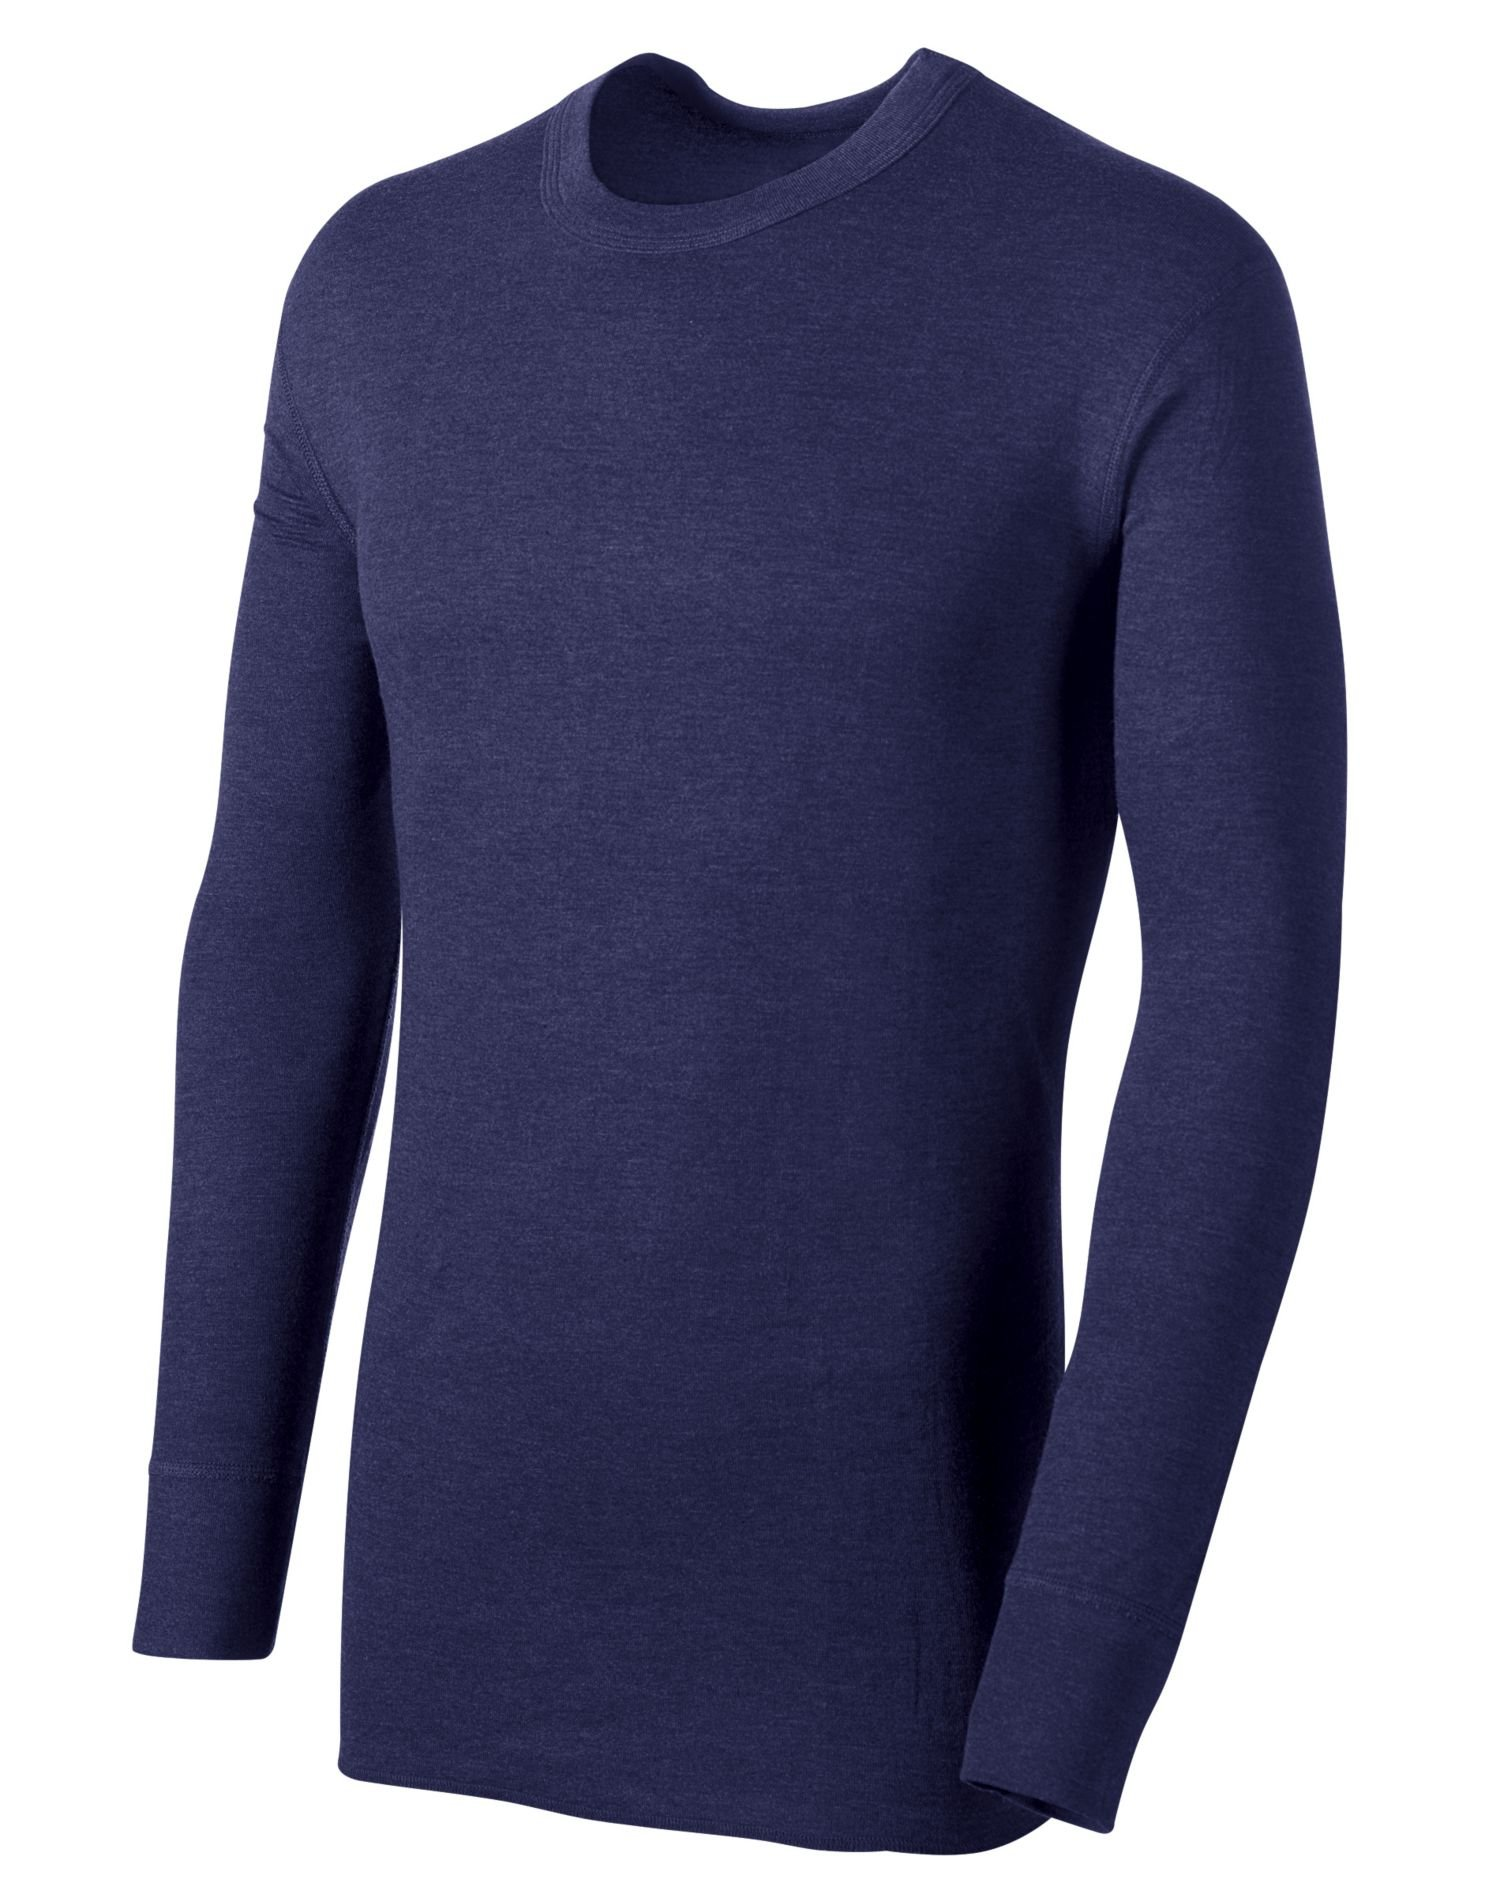 Duofold Men's Midweight Long Sleeve Crew With Moisture Wicking,Navy,Large by Duofold